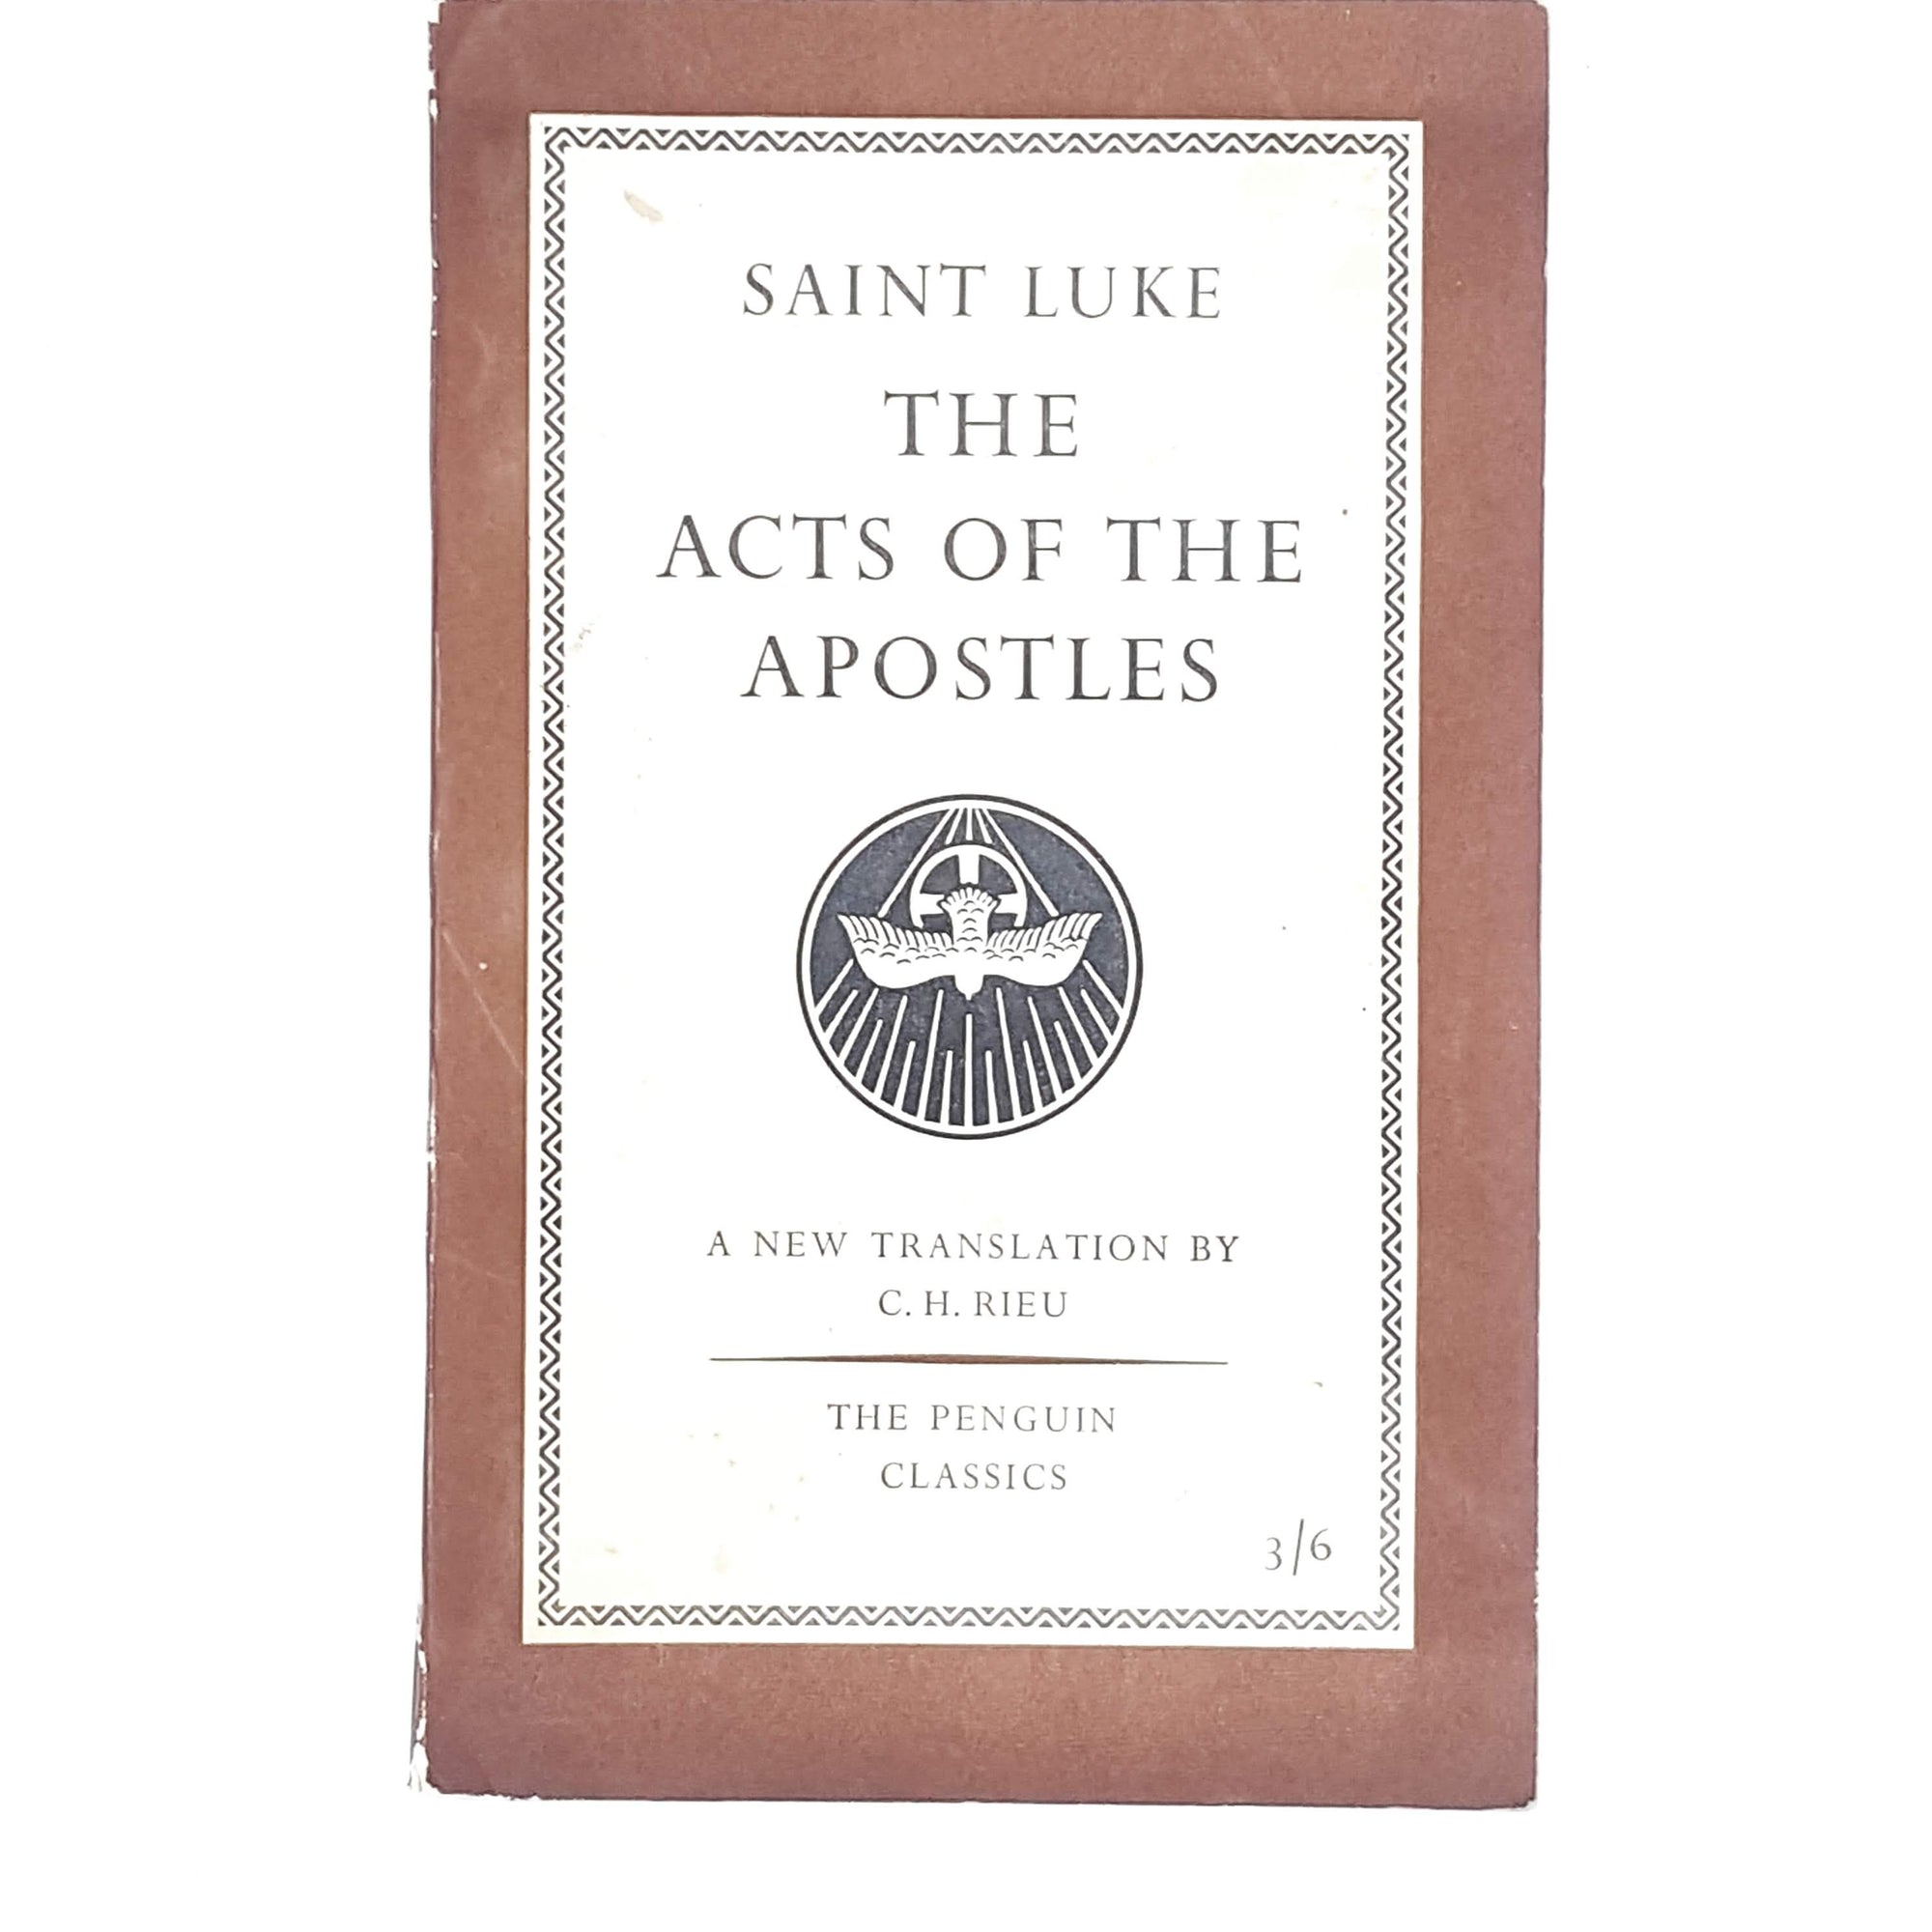 Saint Luke The Acts of the Apostles 1957